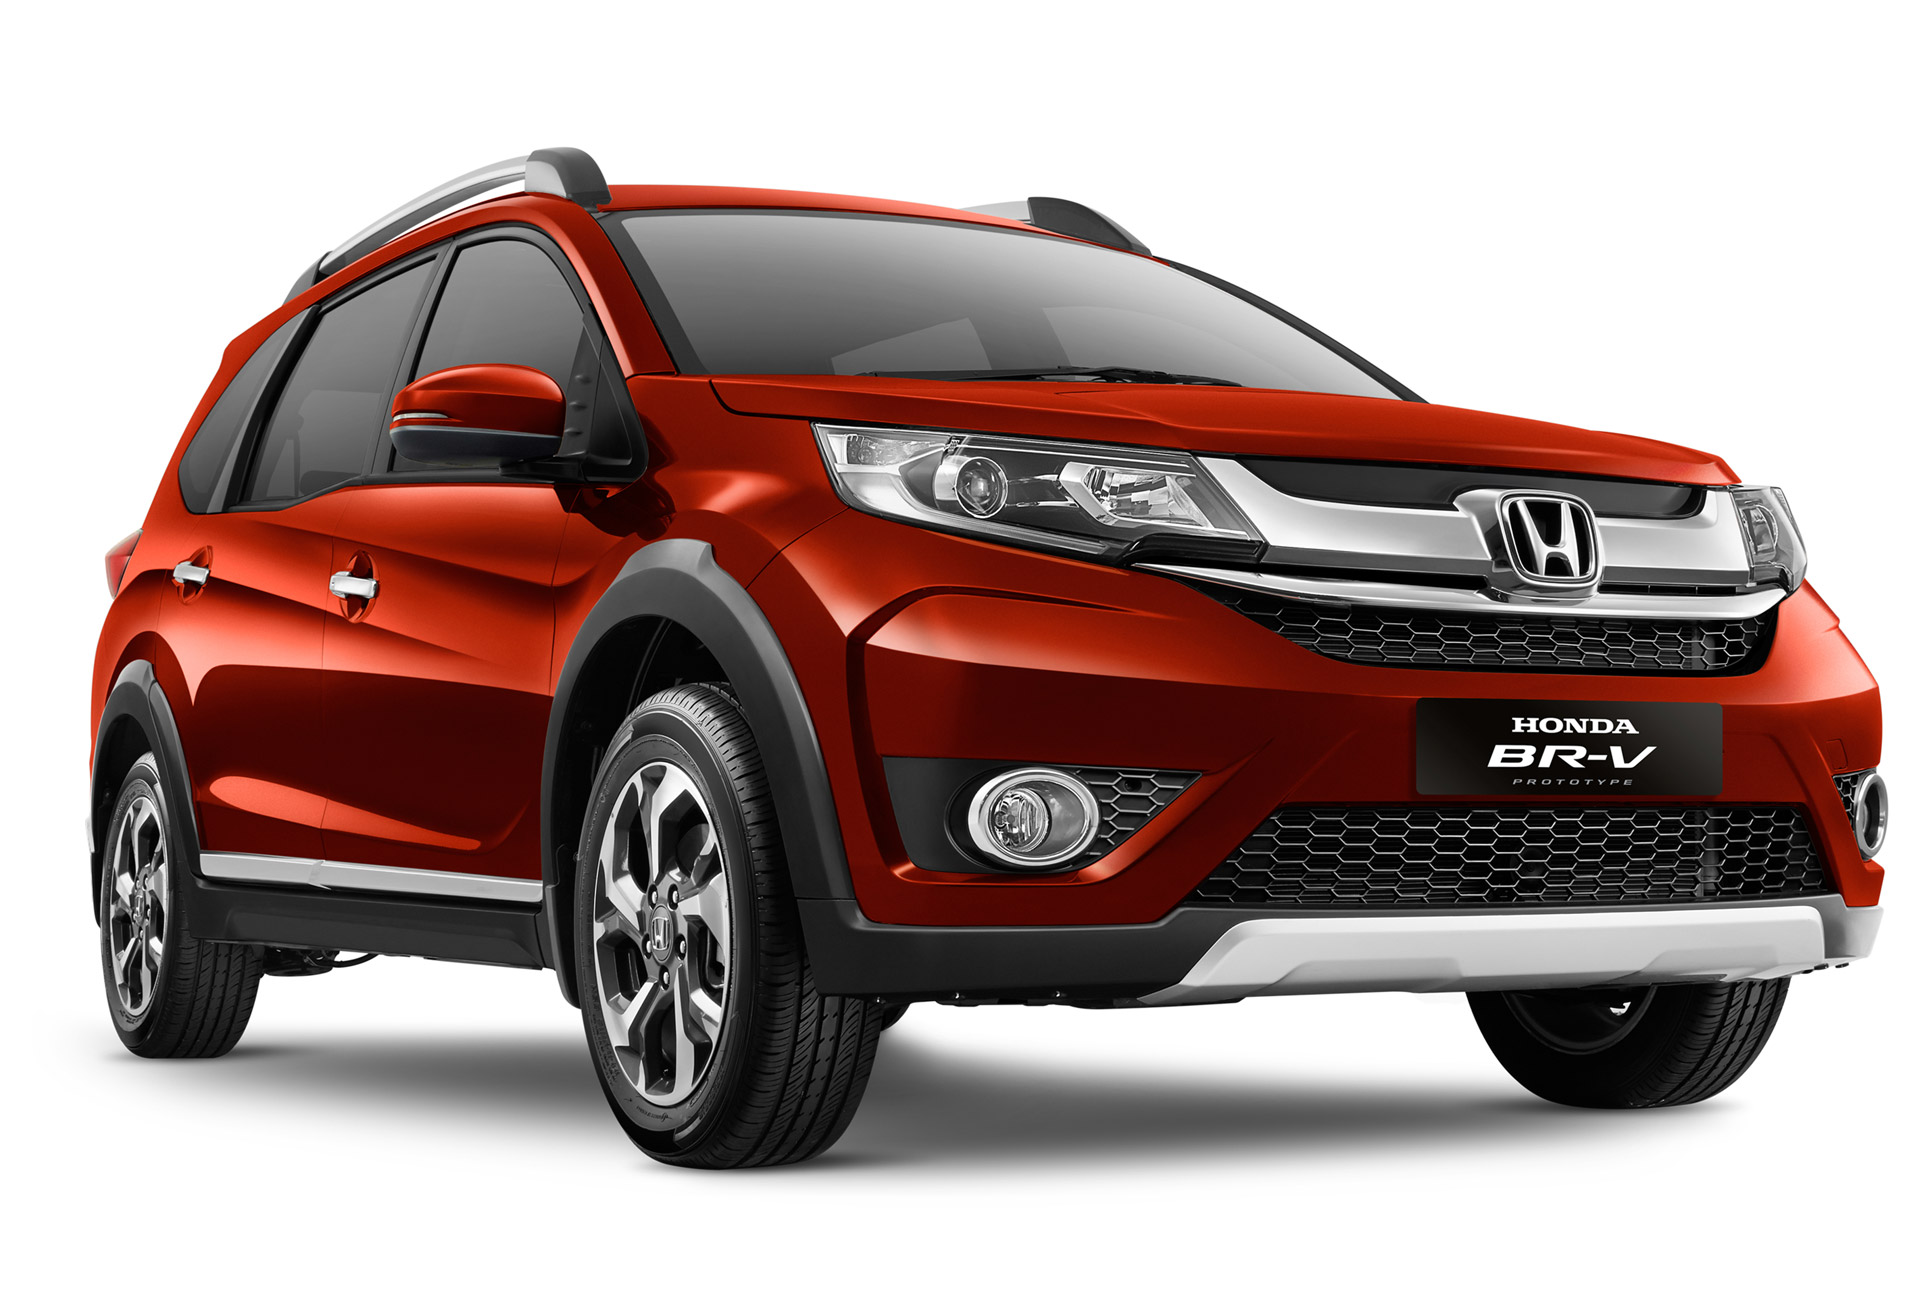 Honda BR-V: Smallest SUV Yet, But Not For North America ...